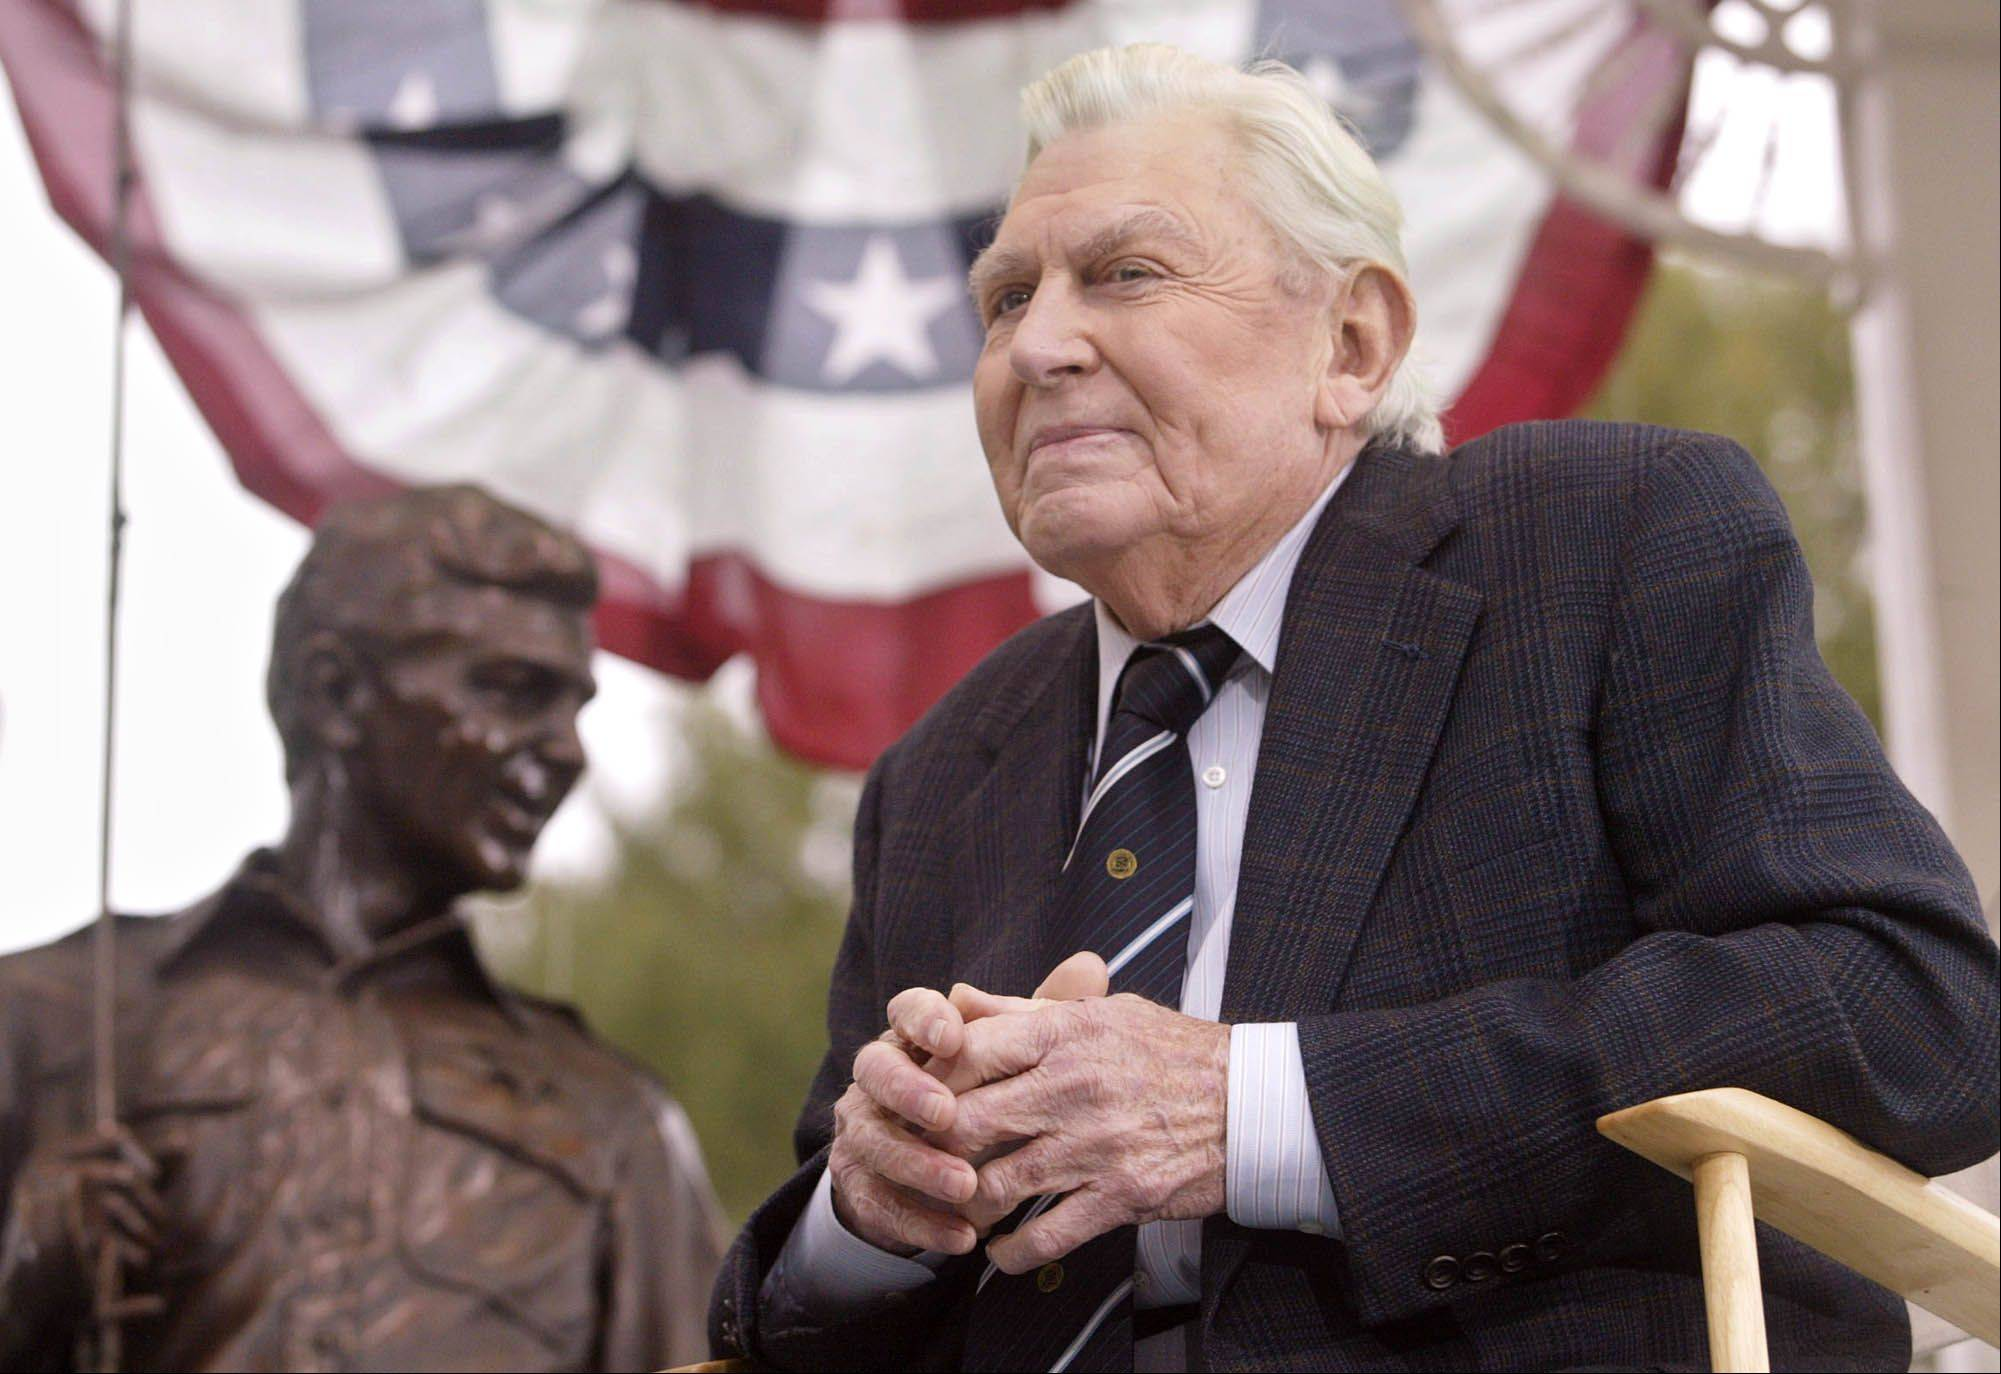 Andy Griffith sits in front of a bronze statue of Andy and Opie from the �Andy Griffith Show,� in this Tuesday, Oct. 28, 2003 file photo, after the statue was unveiled during a ceremony in Raleigh, N.C. Griffith, the actor who portrayed the sheriff of the fictional town of Mayberry, N.C. died Tuesday in his North Carolina home.